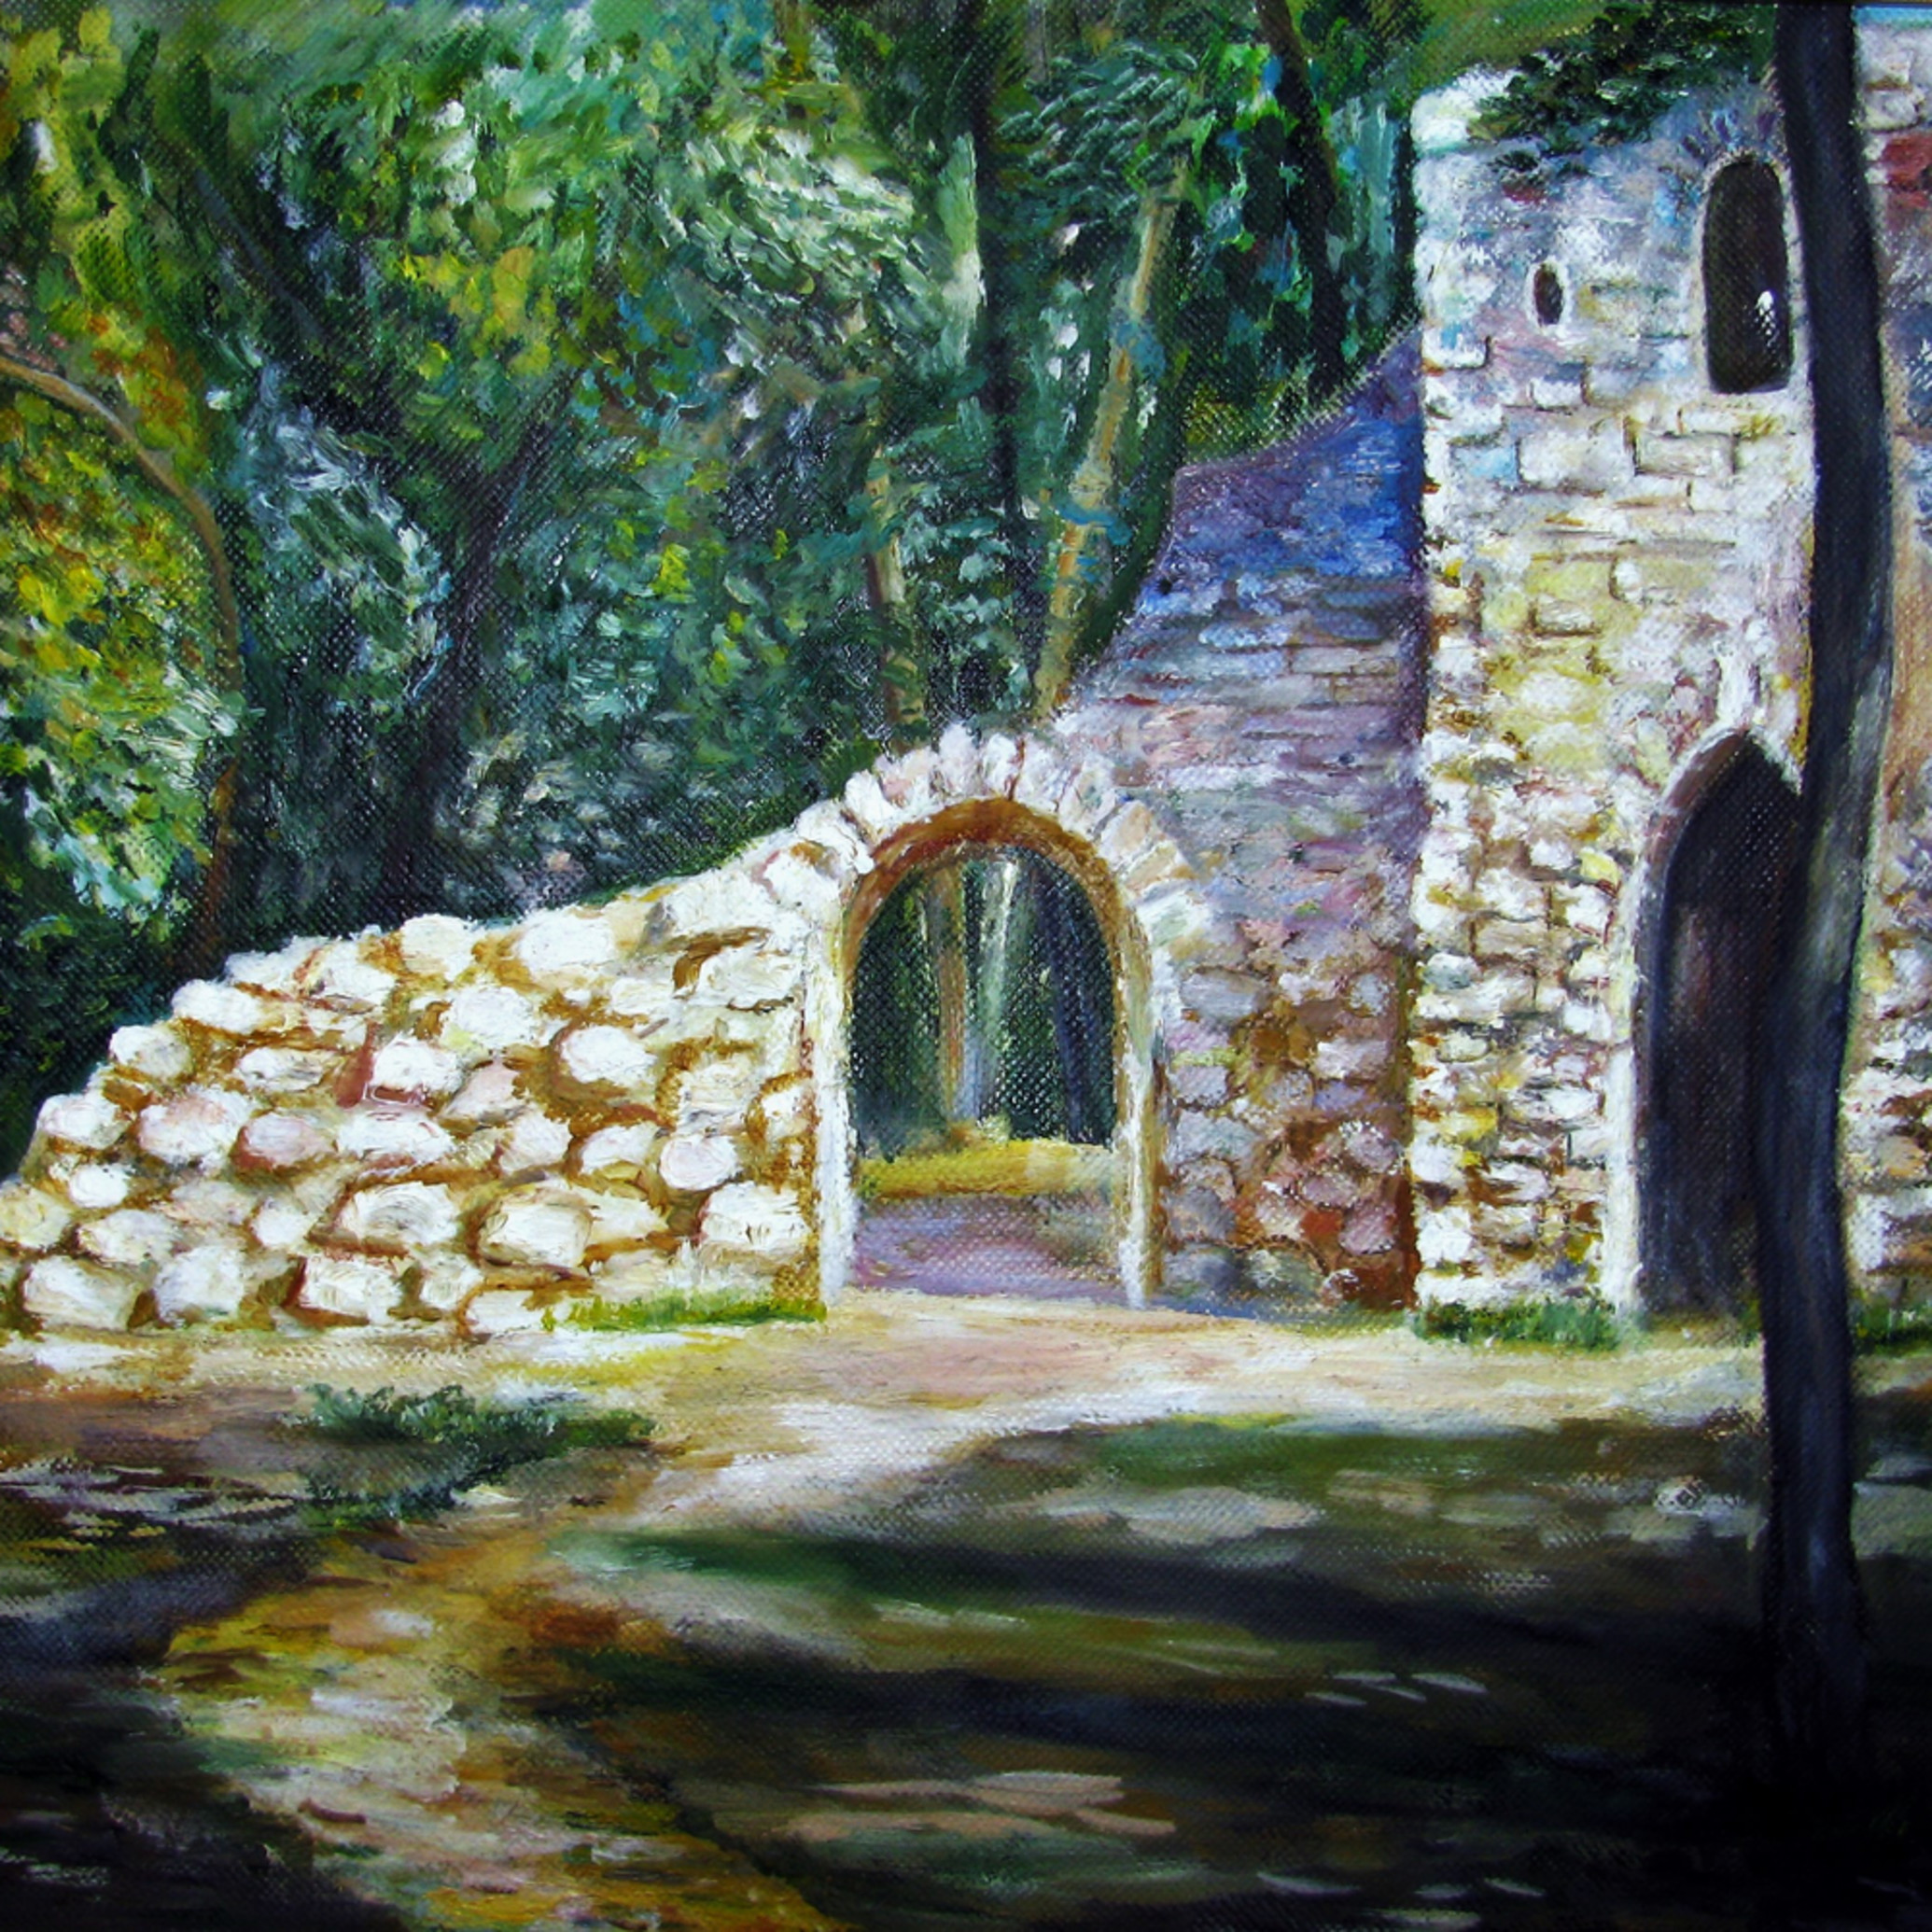 Old castle in the forest yjpnxr